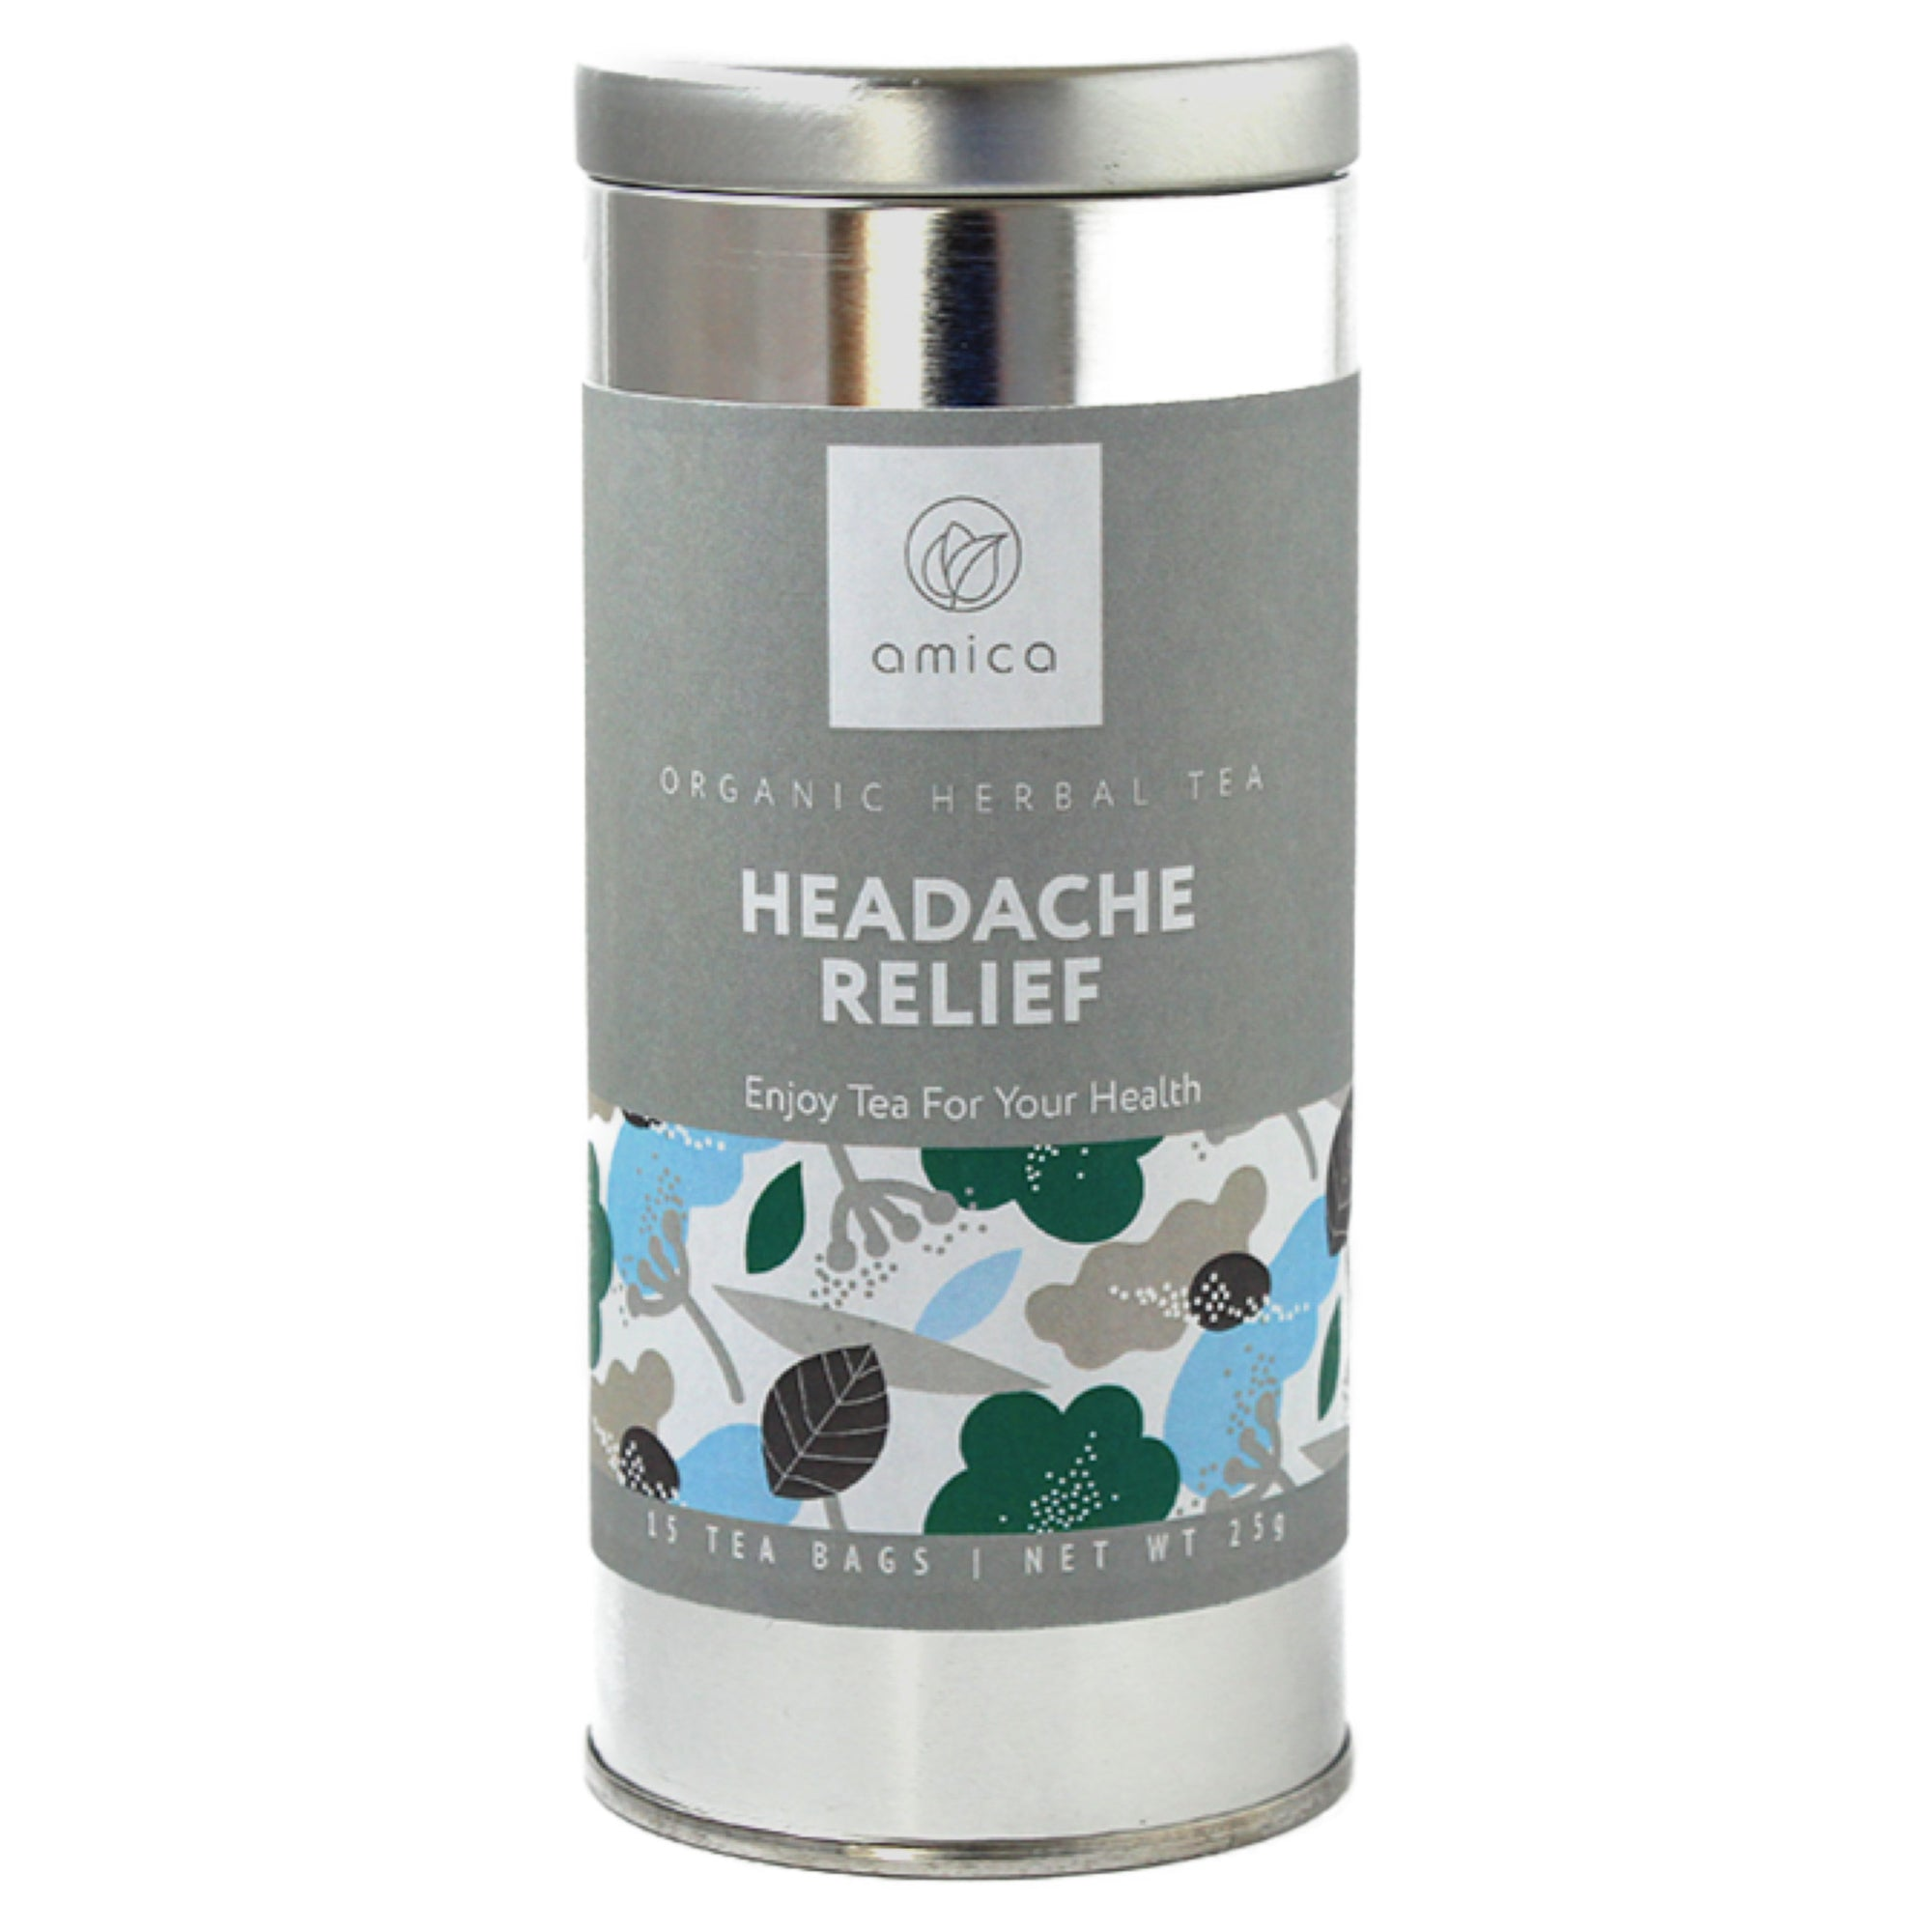 Headache Relief Tea